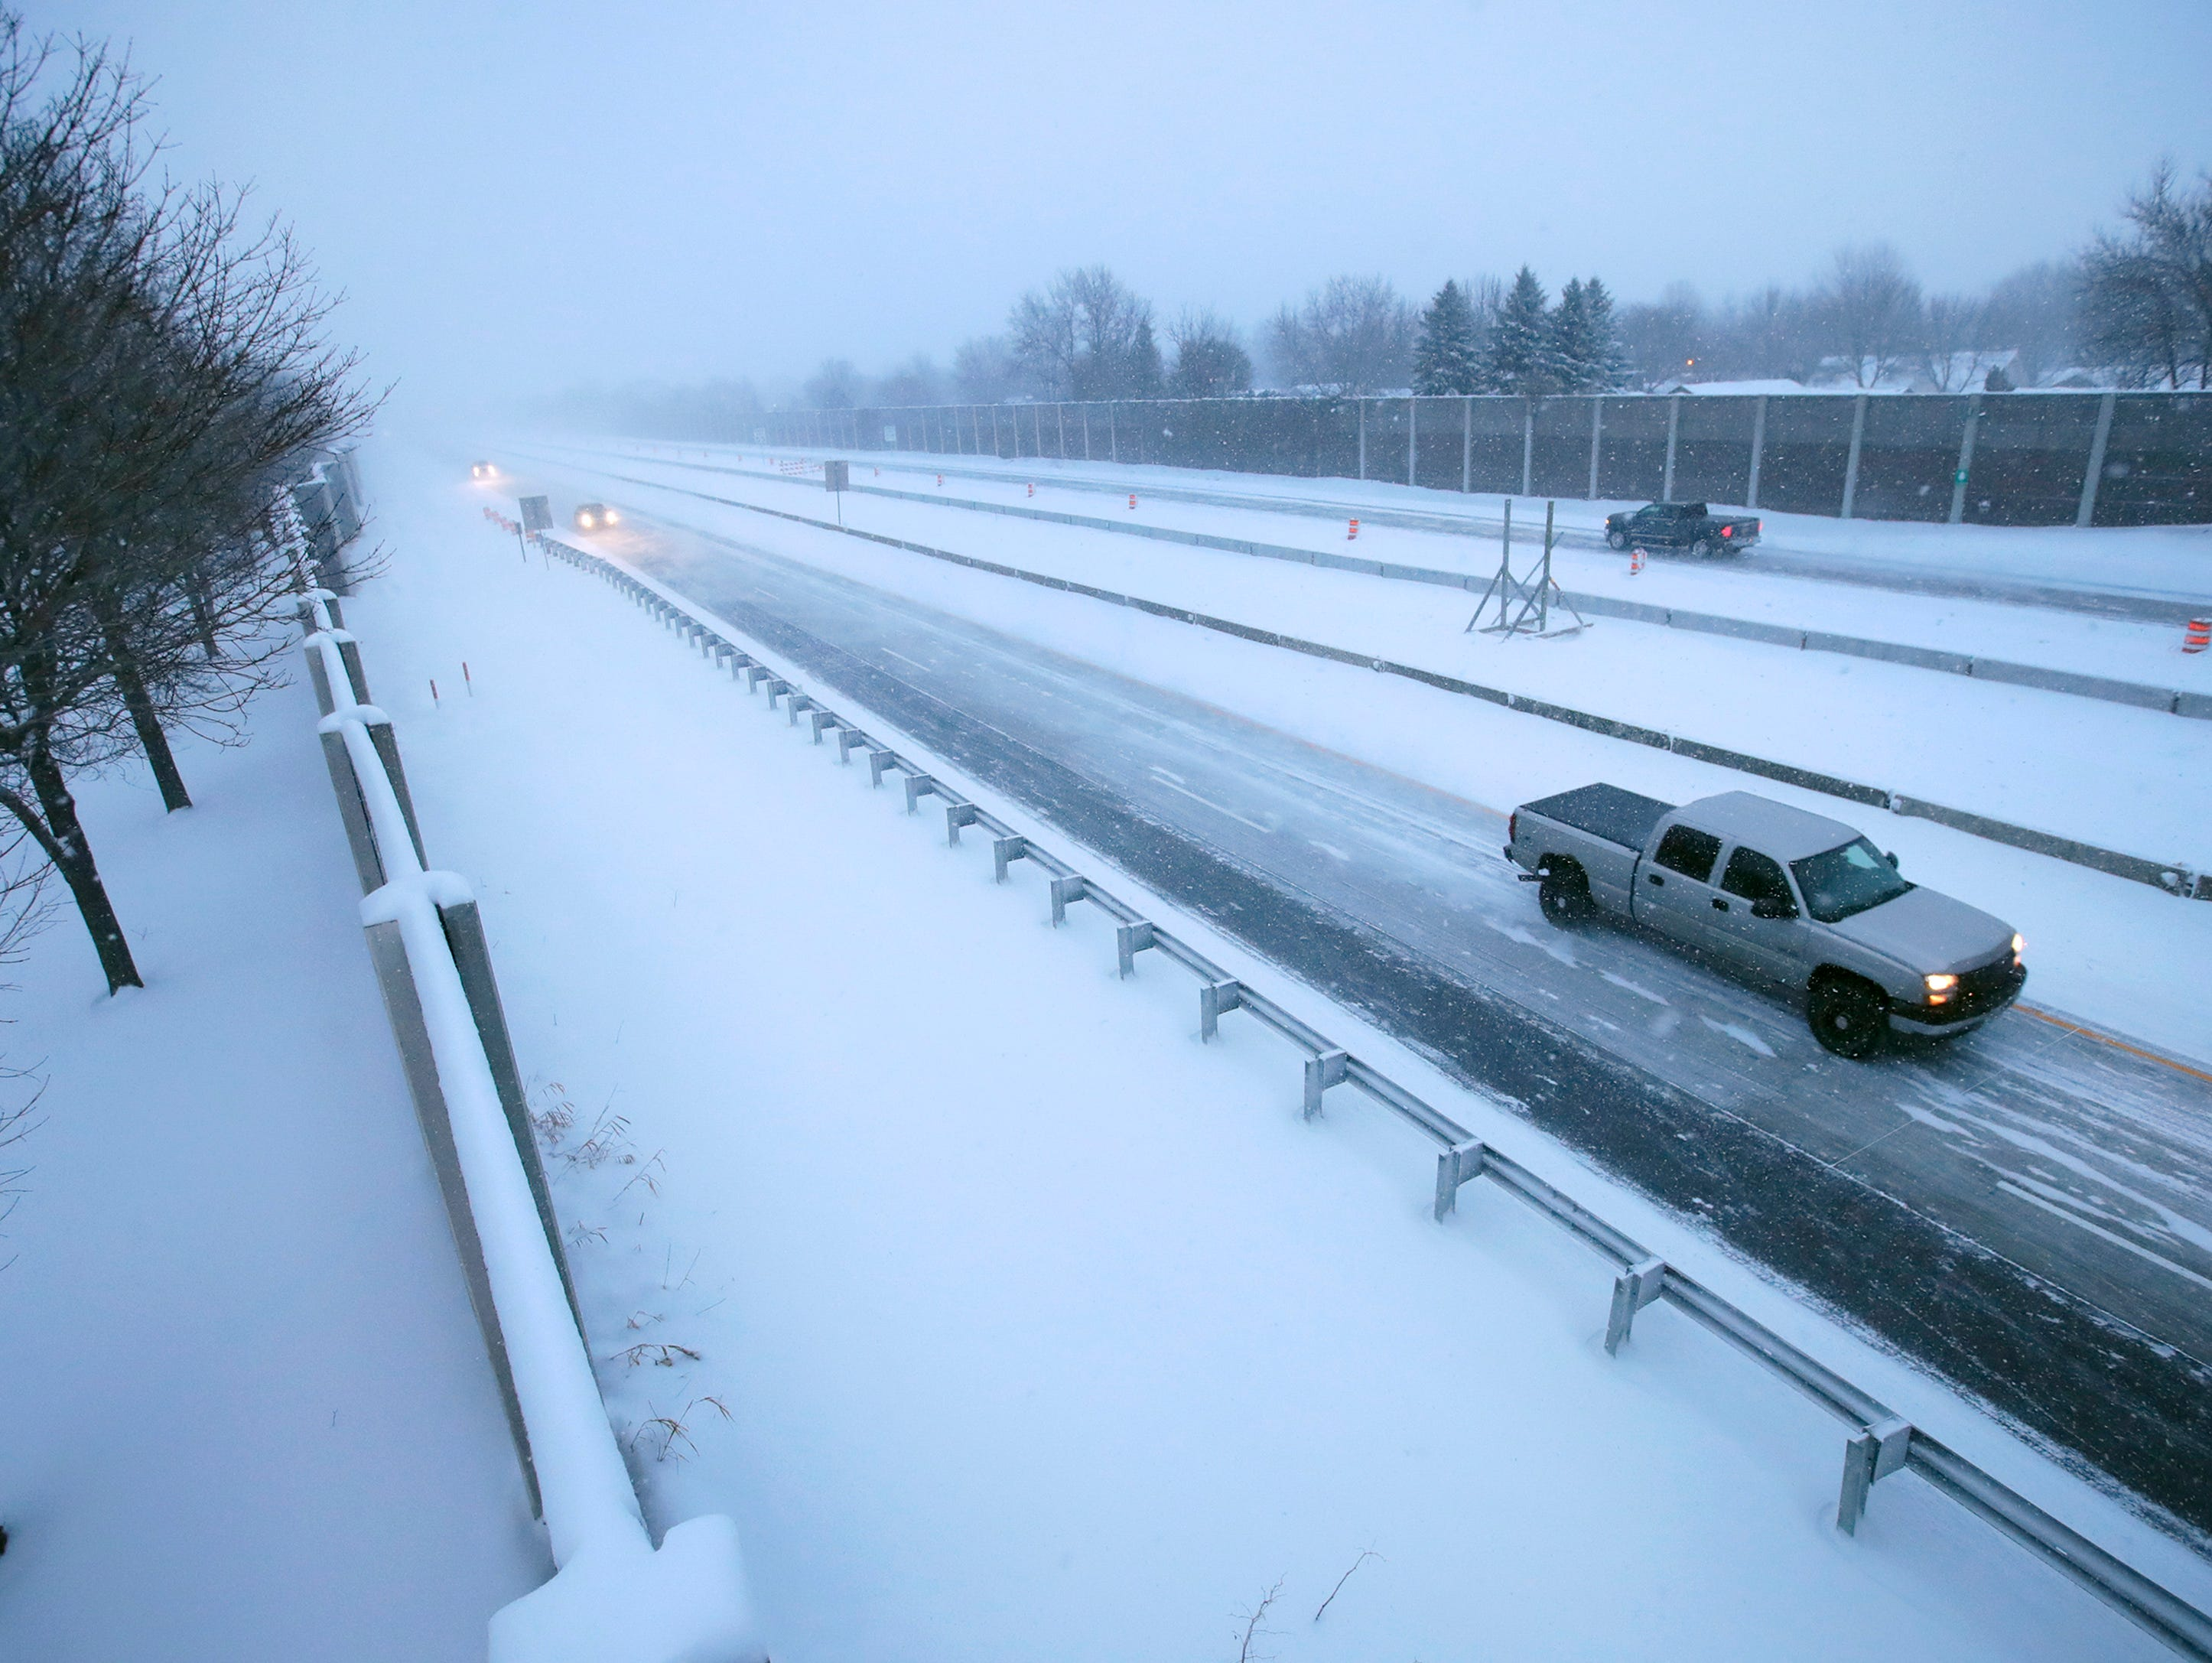 Vehicles travel along 441 during a snowstorm Monday, Jan. 28, 2019, in Appleton, Wis.